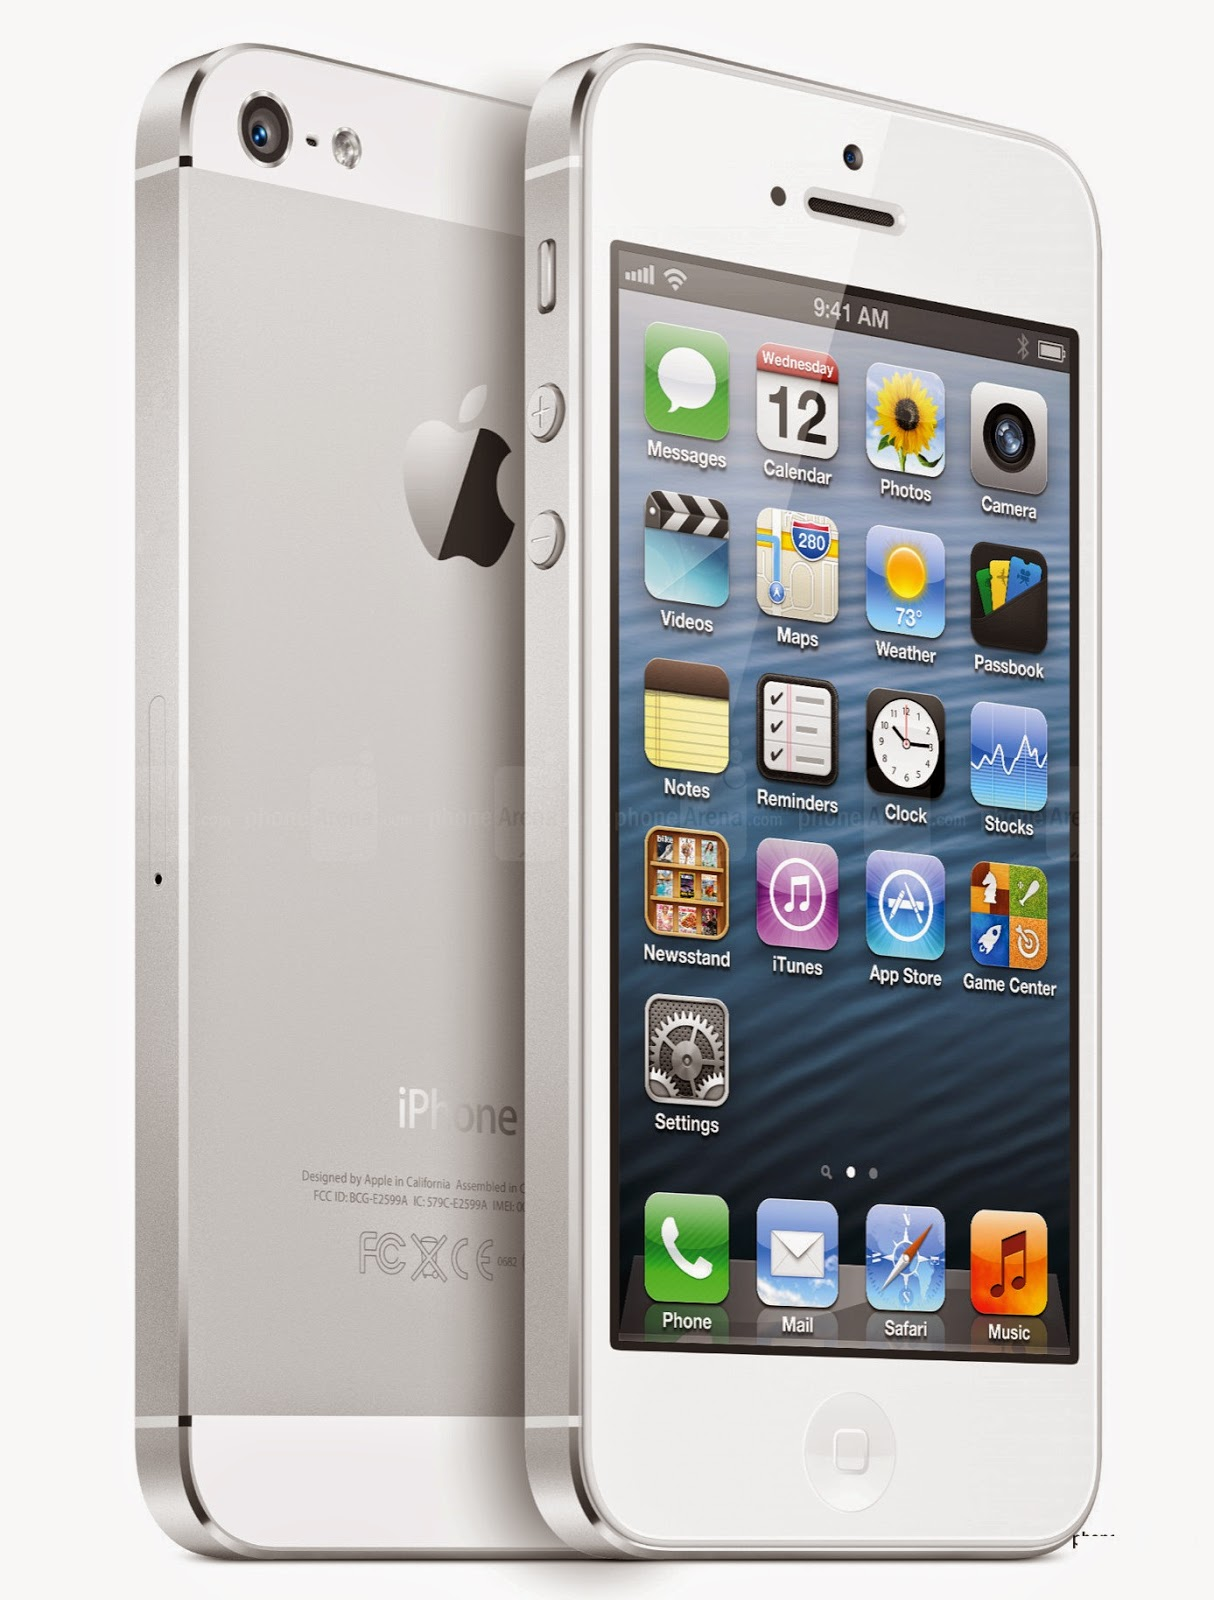 Apple iPhone 5 Price, Full Specification, Hands On & Review